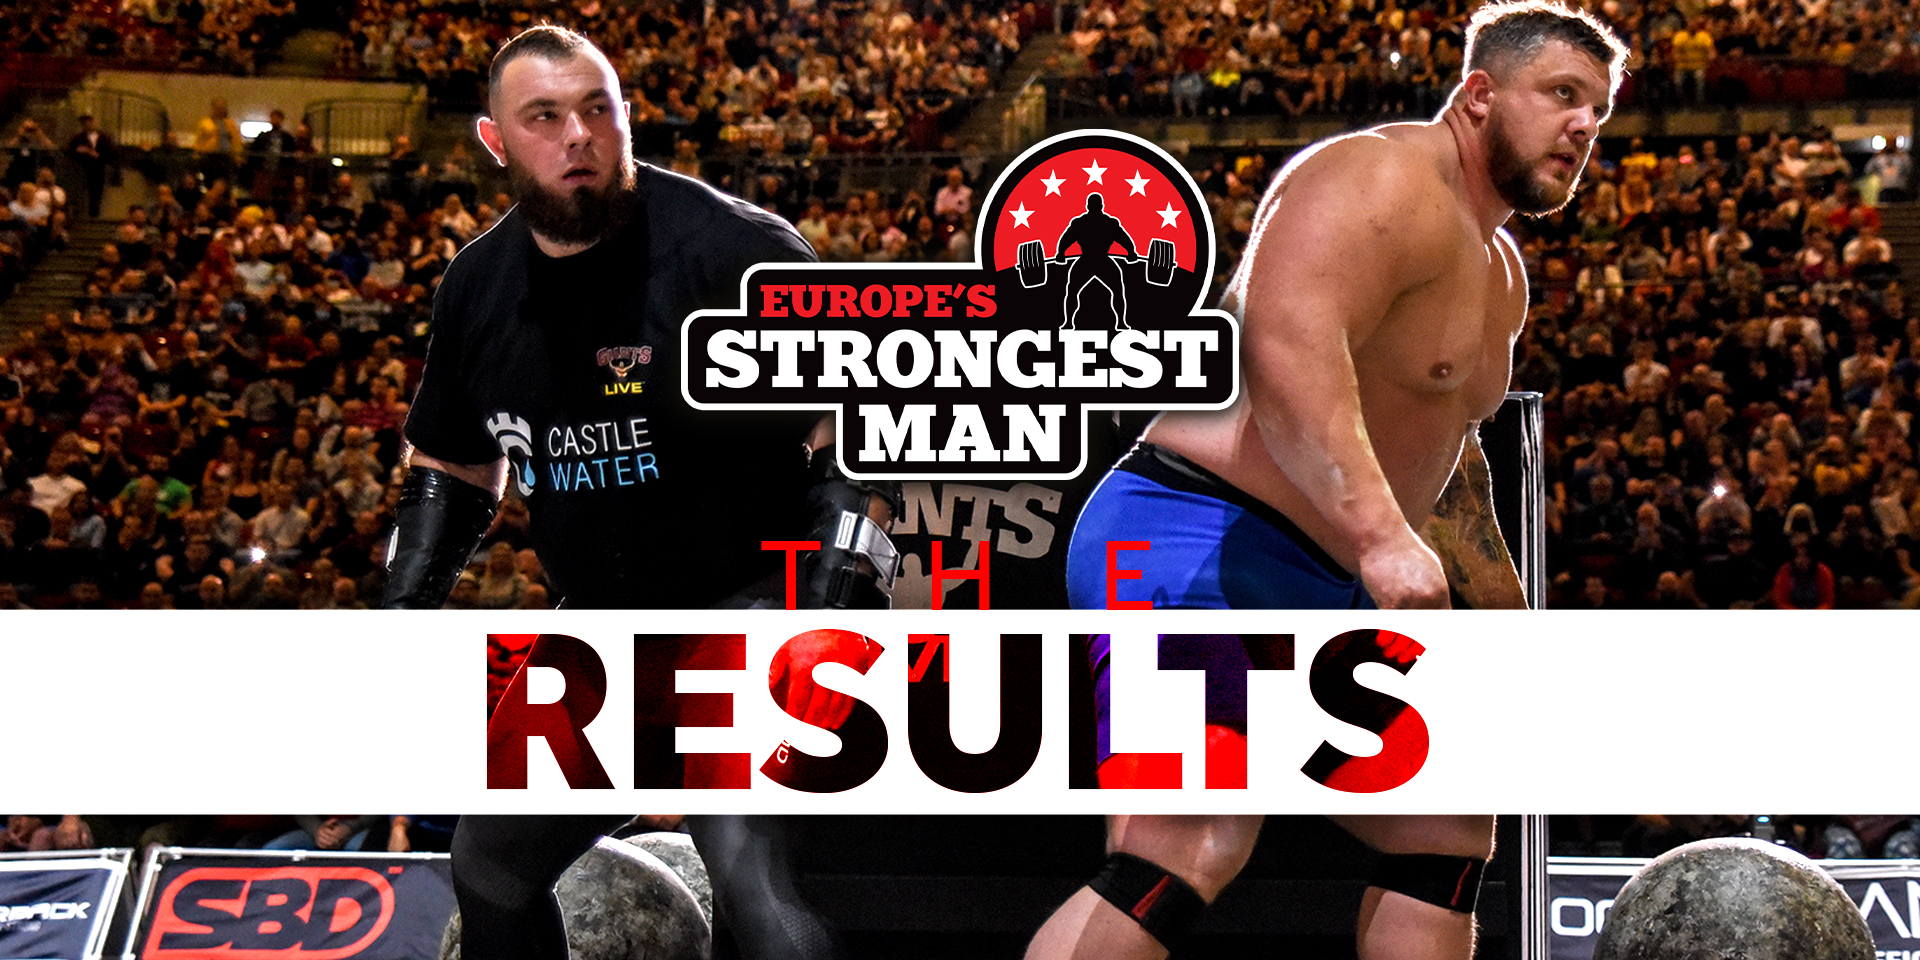 Europe's Strongest Man 2021 THE RESULTS